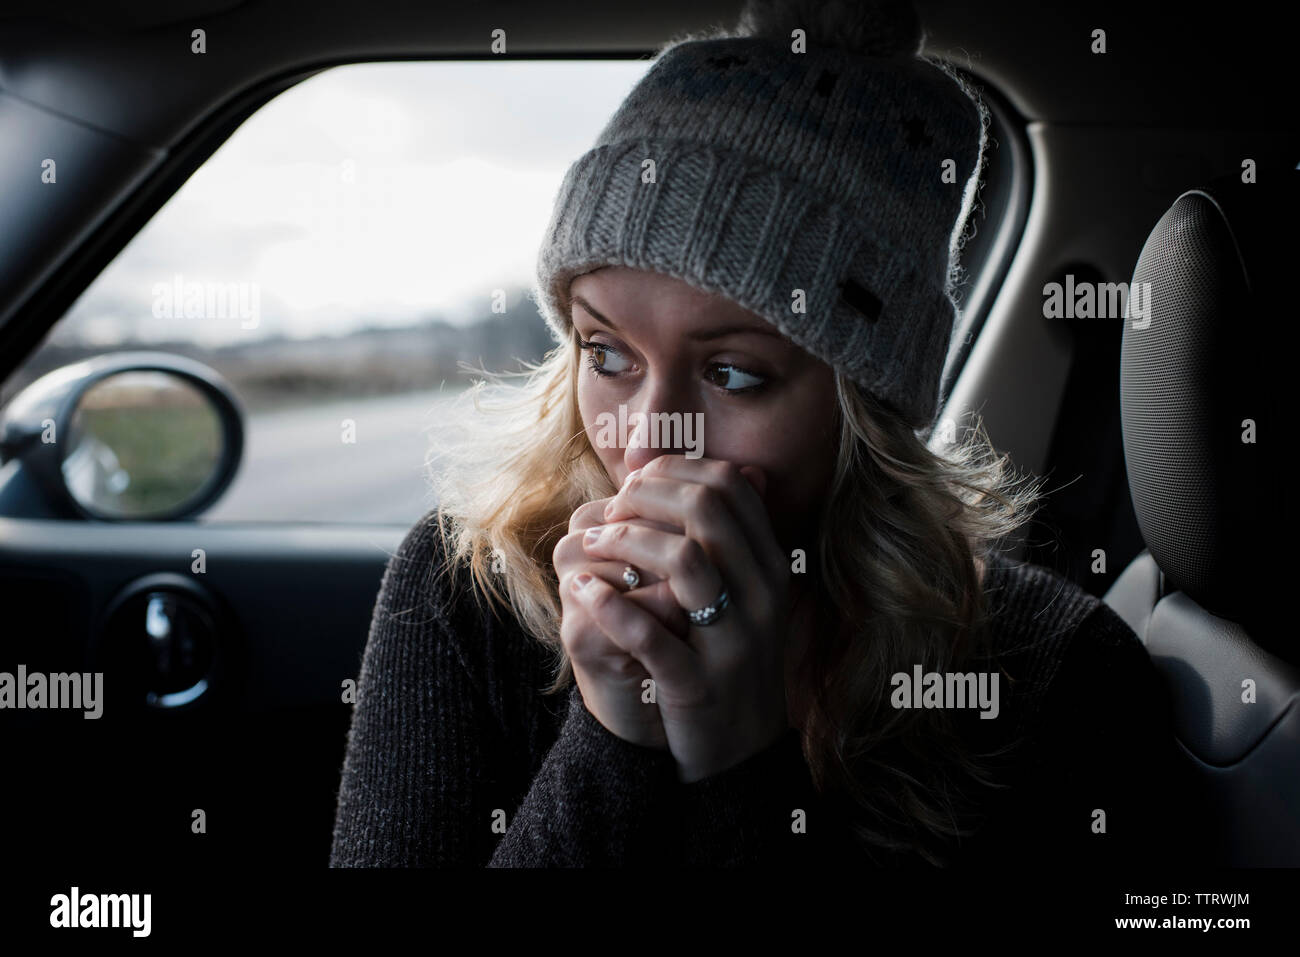 Close-up of woman with hands clasped looking away while sitting in car Banque D'Images